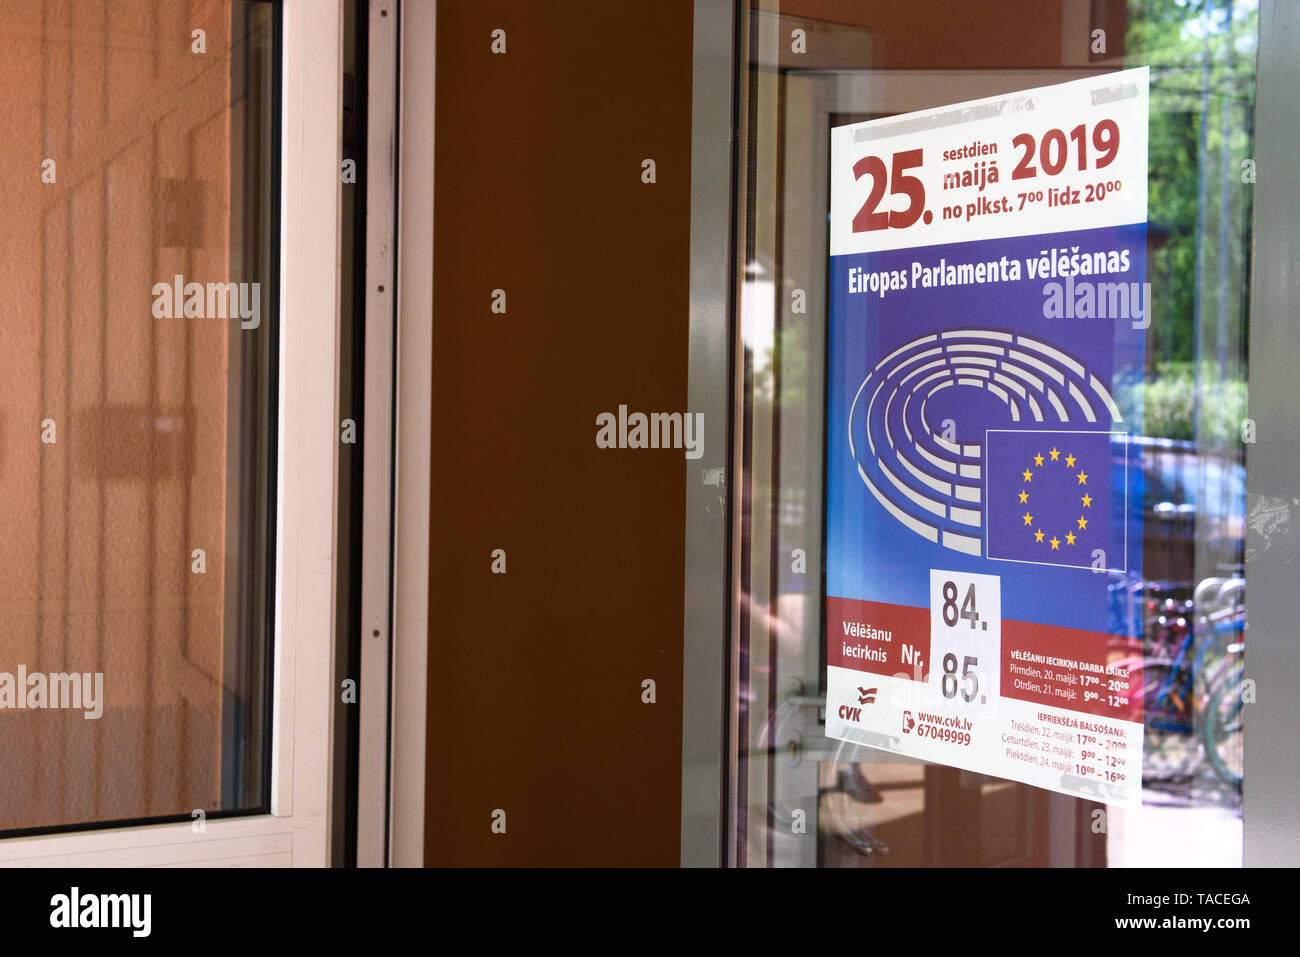 Riga, Latvia. 23rd May, 2019. Early voting at 2019 European Parliament Election in Latvia. Credit: Gints Ivuskans/Alamy Live News - Stock Image